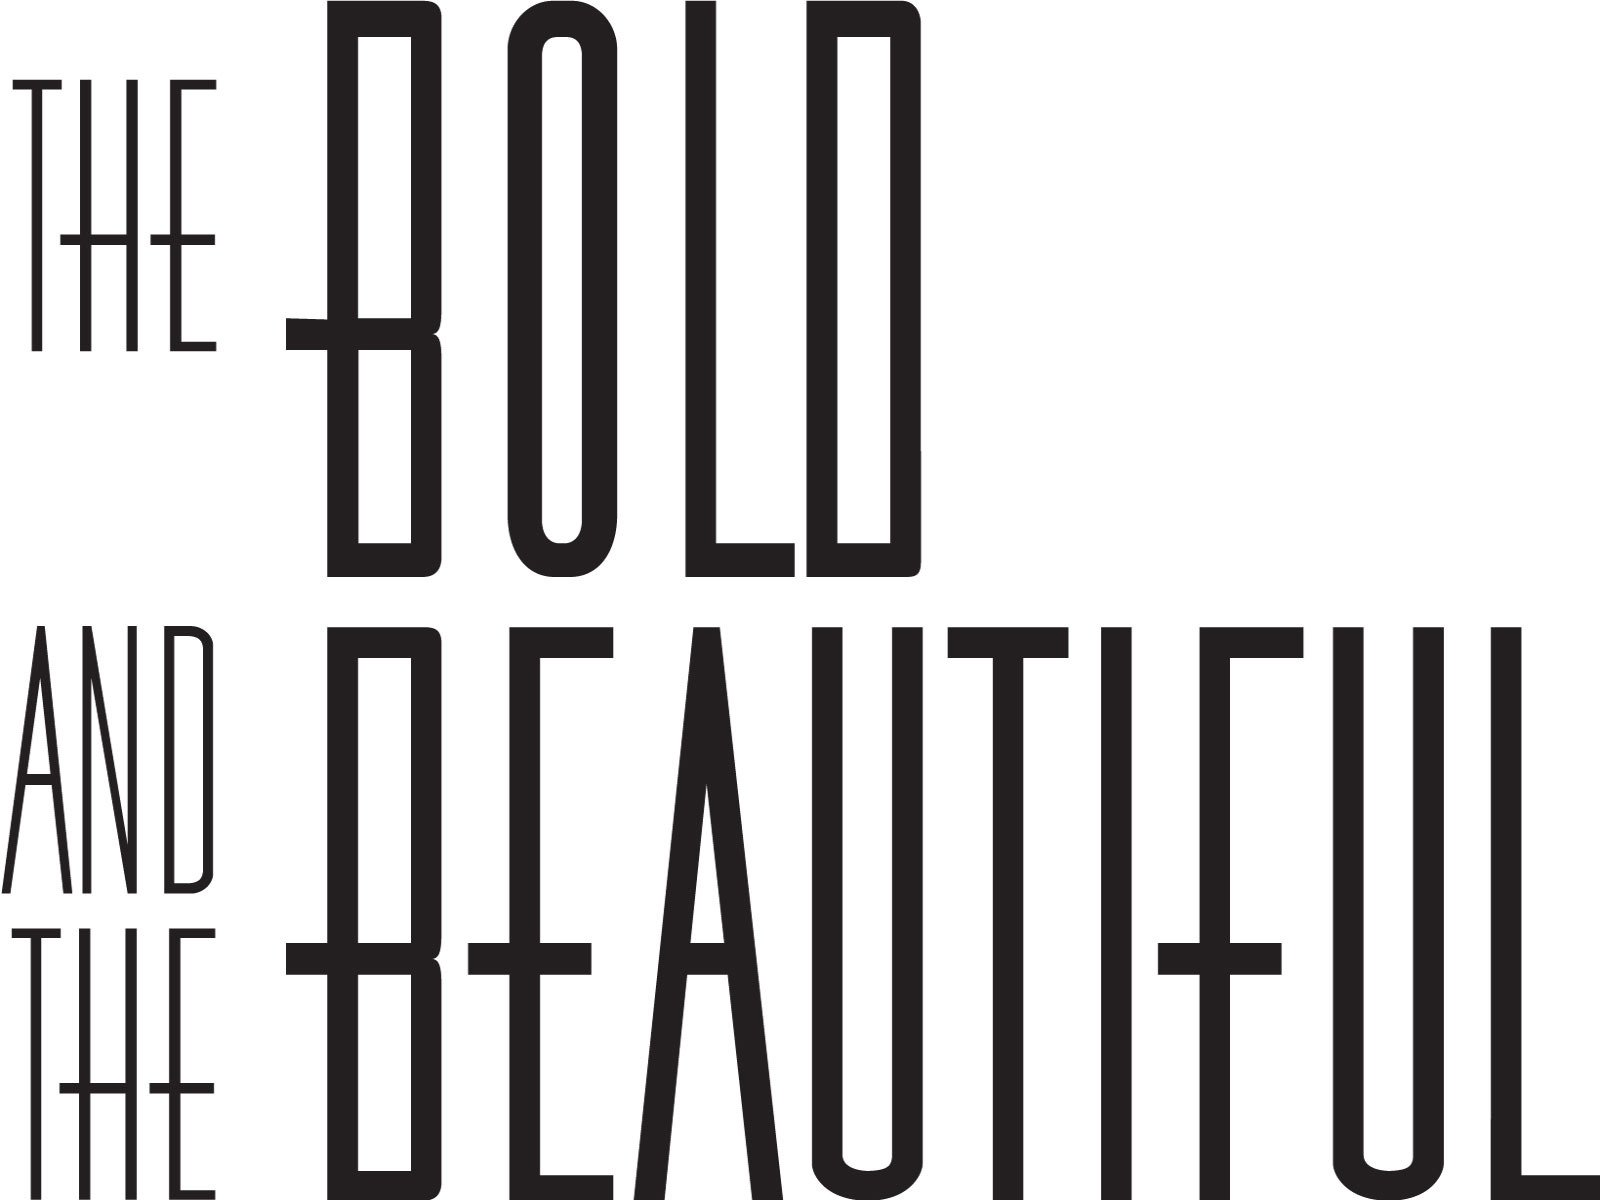 Amazon.com: Watch The Bold and the Beautiful | Prime Video